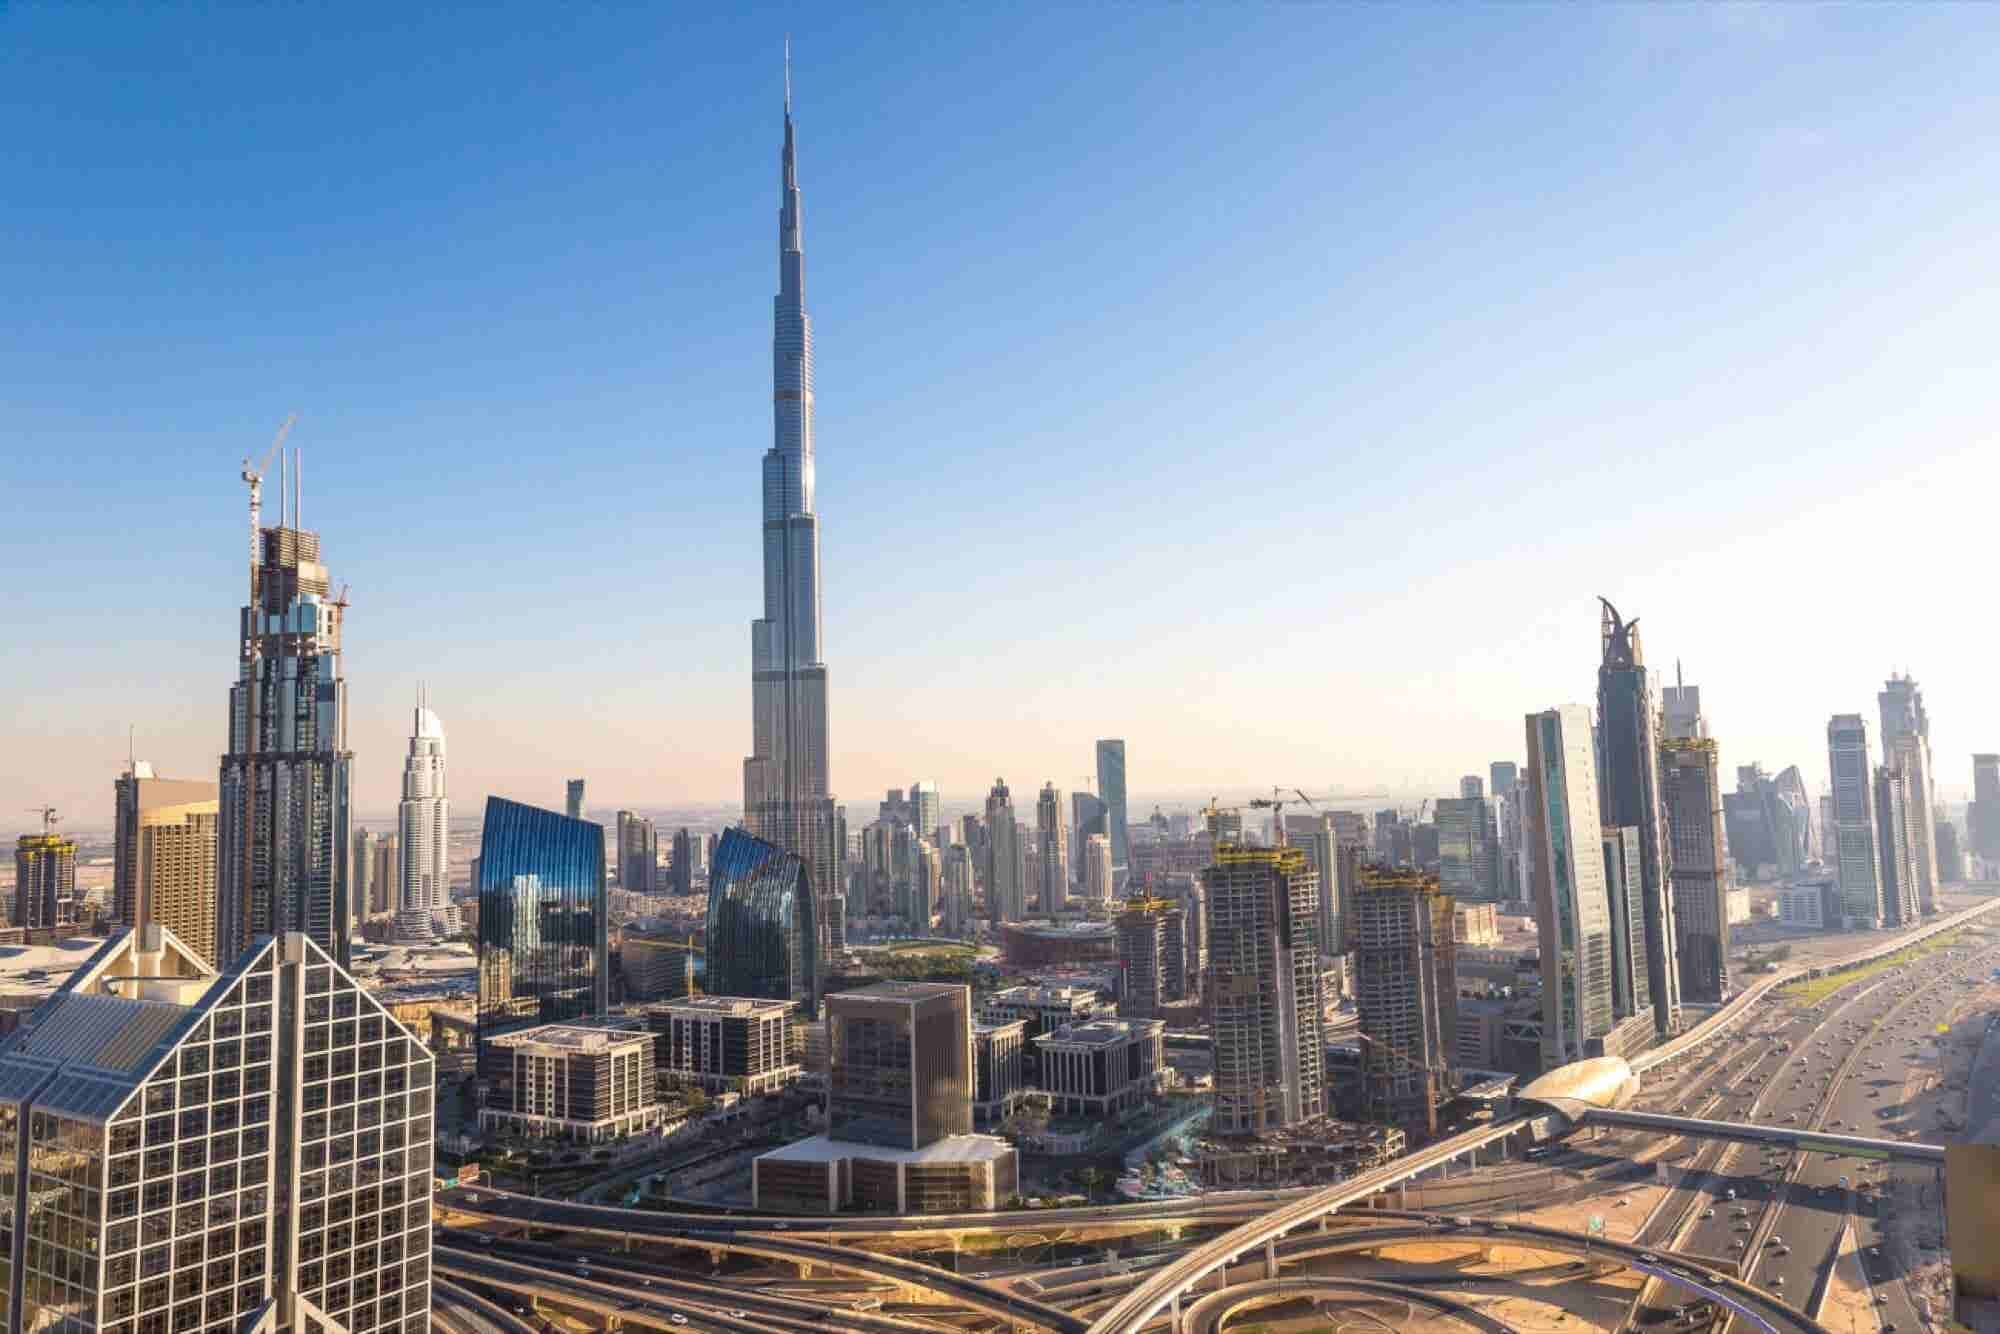 Enabling The Arab World To Become The World's Next Startup Hub